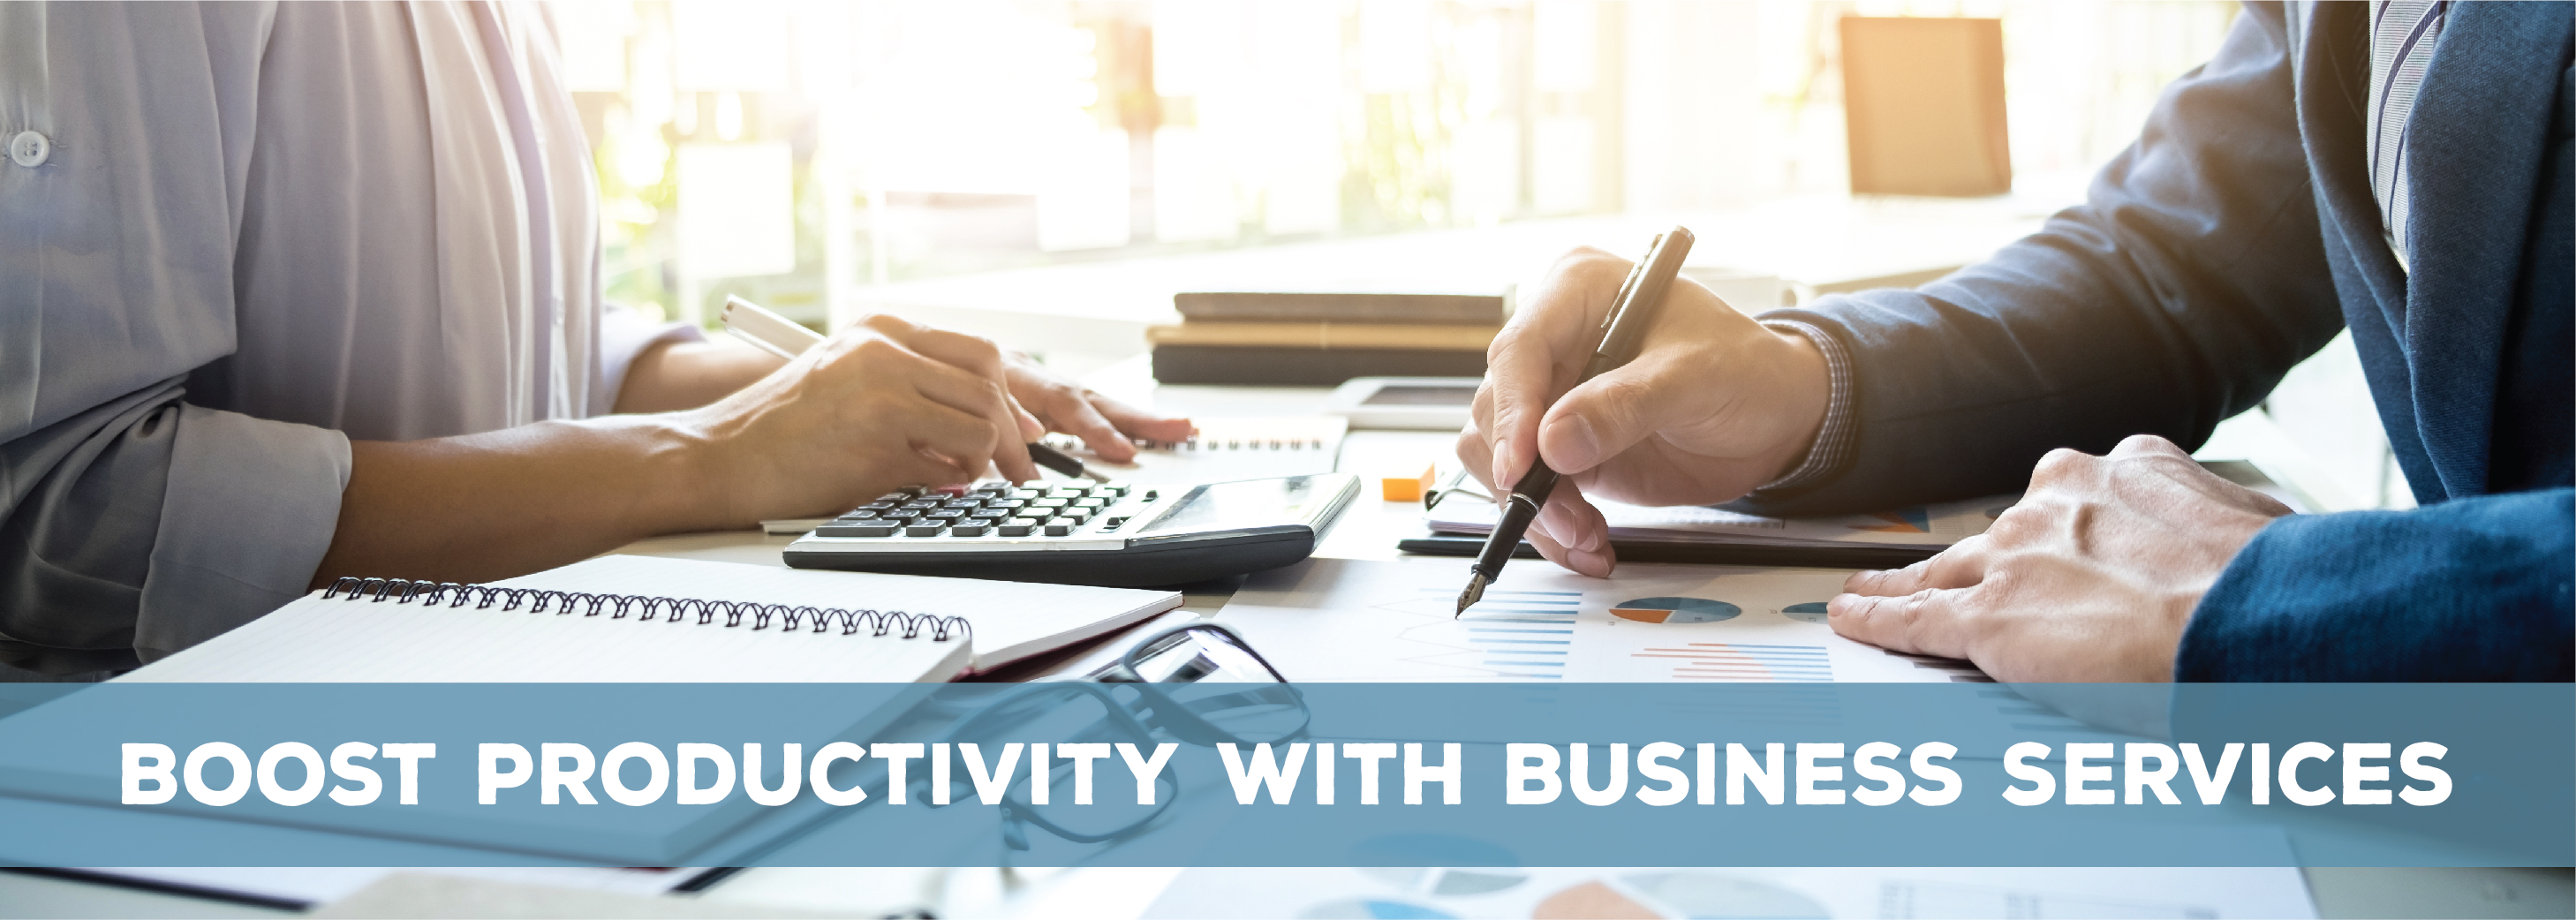 Boost Productivity with Business Services   ADI Agency